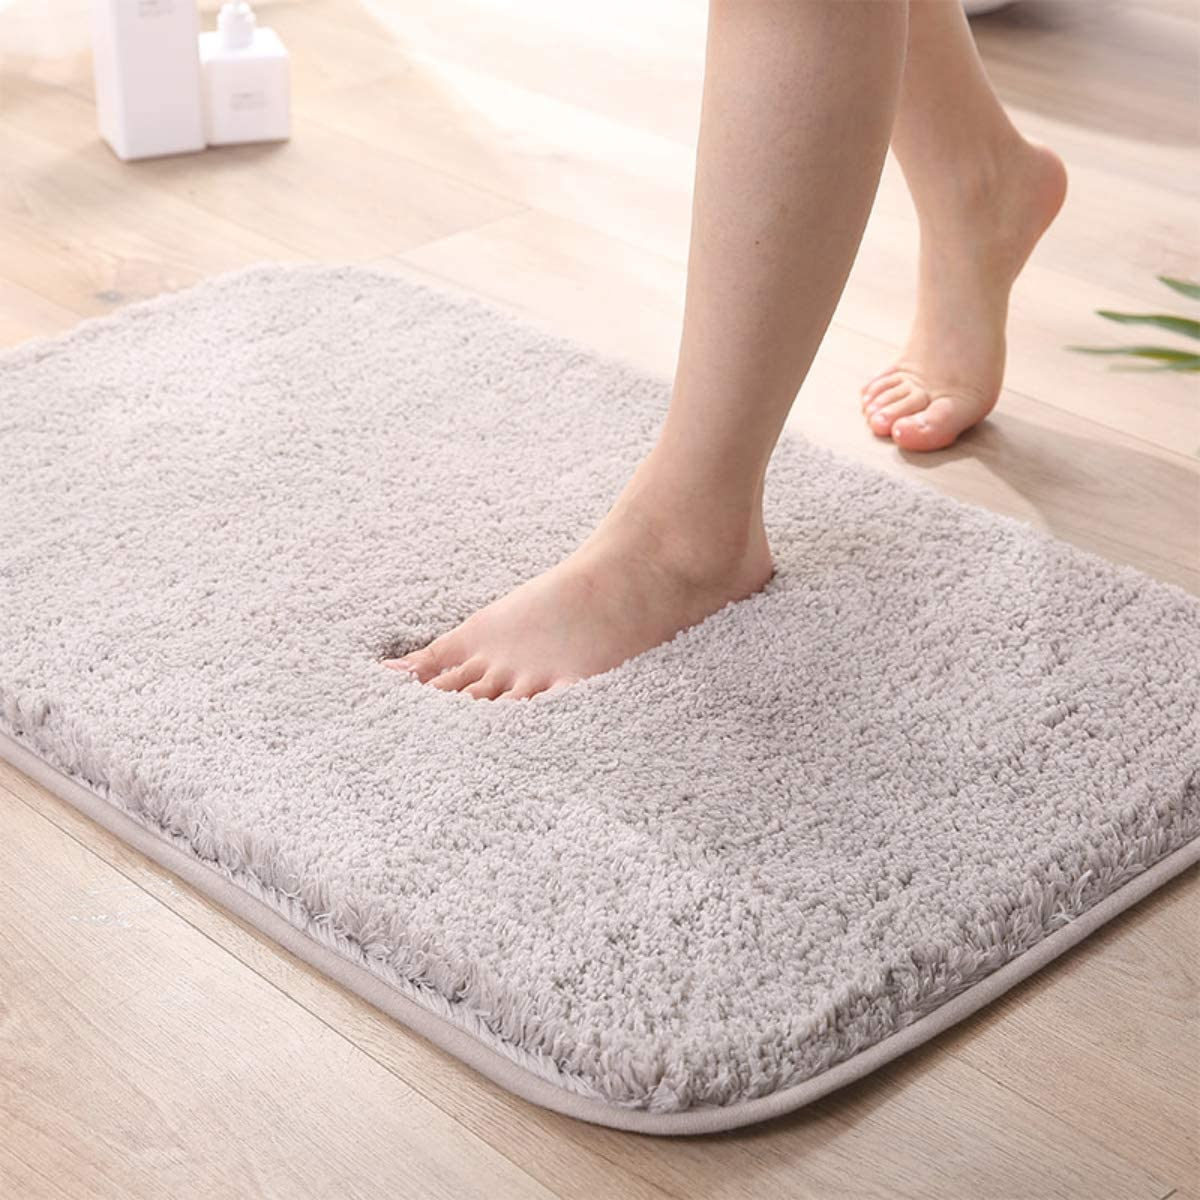 Fufengz Bathroom Carpet Mats, Super Soft and Absorbent Bathroom Carpets, Machine Wash/Dry Clothes, for Bathtubs, Showers and Bathrooms (24